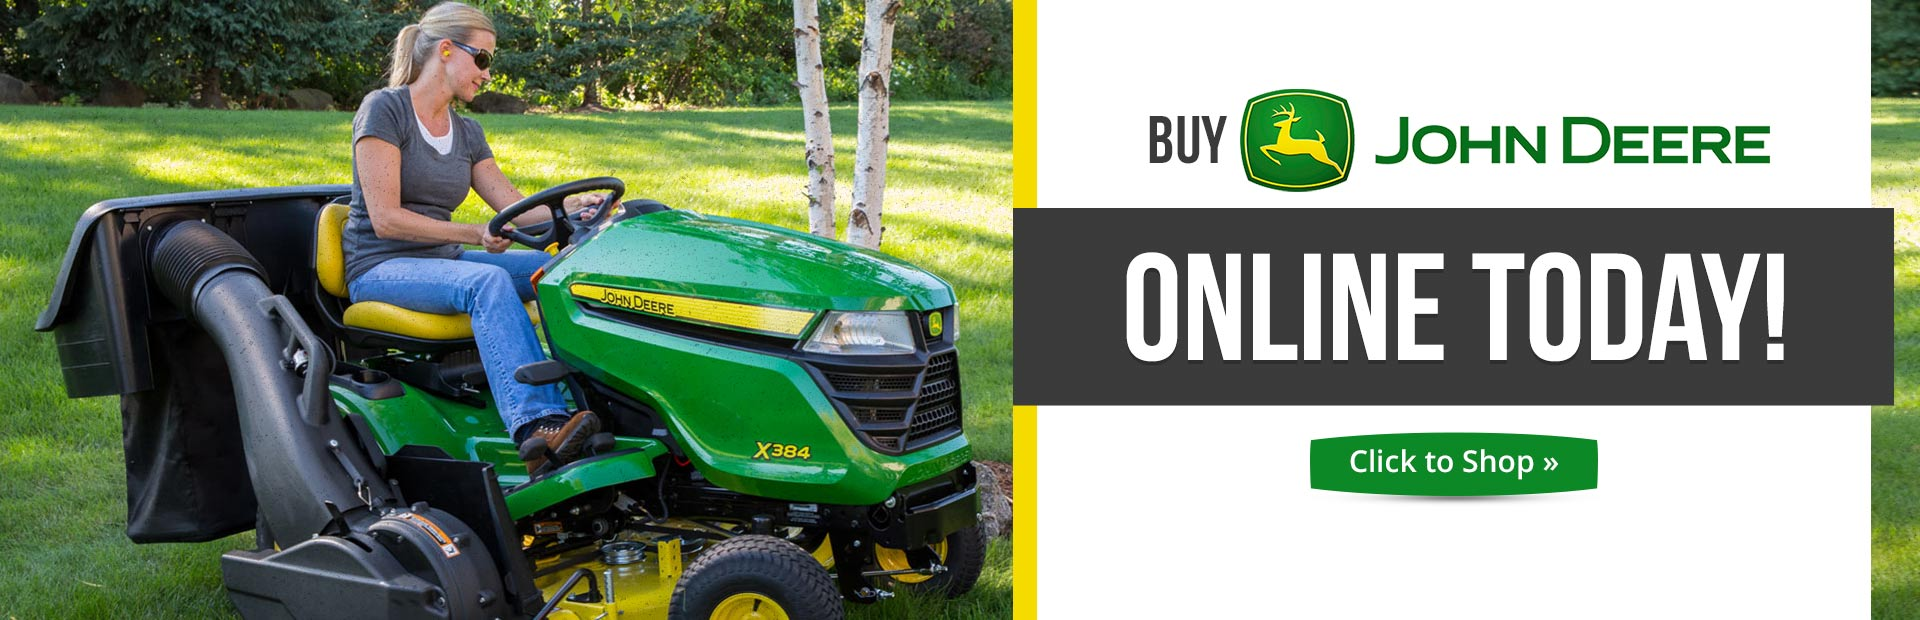 Buy John Deere online today!